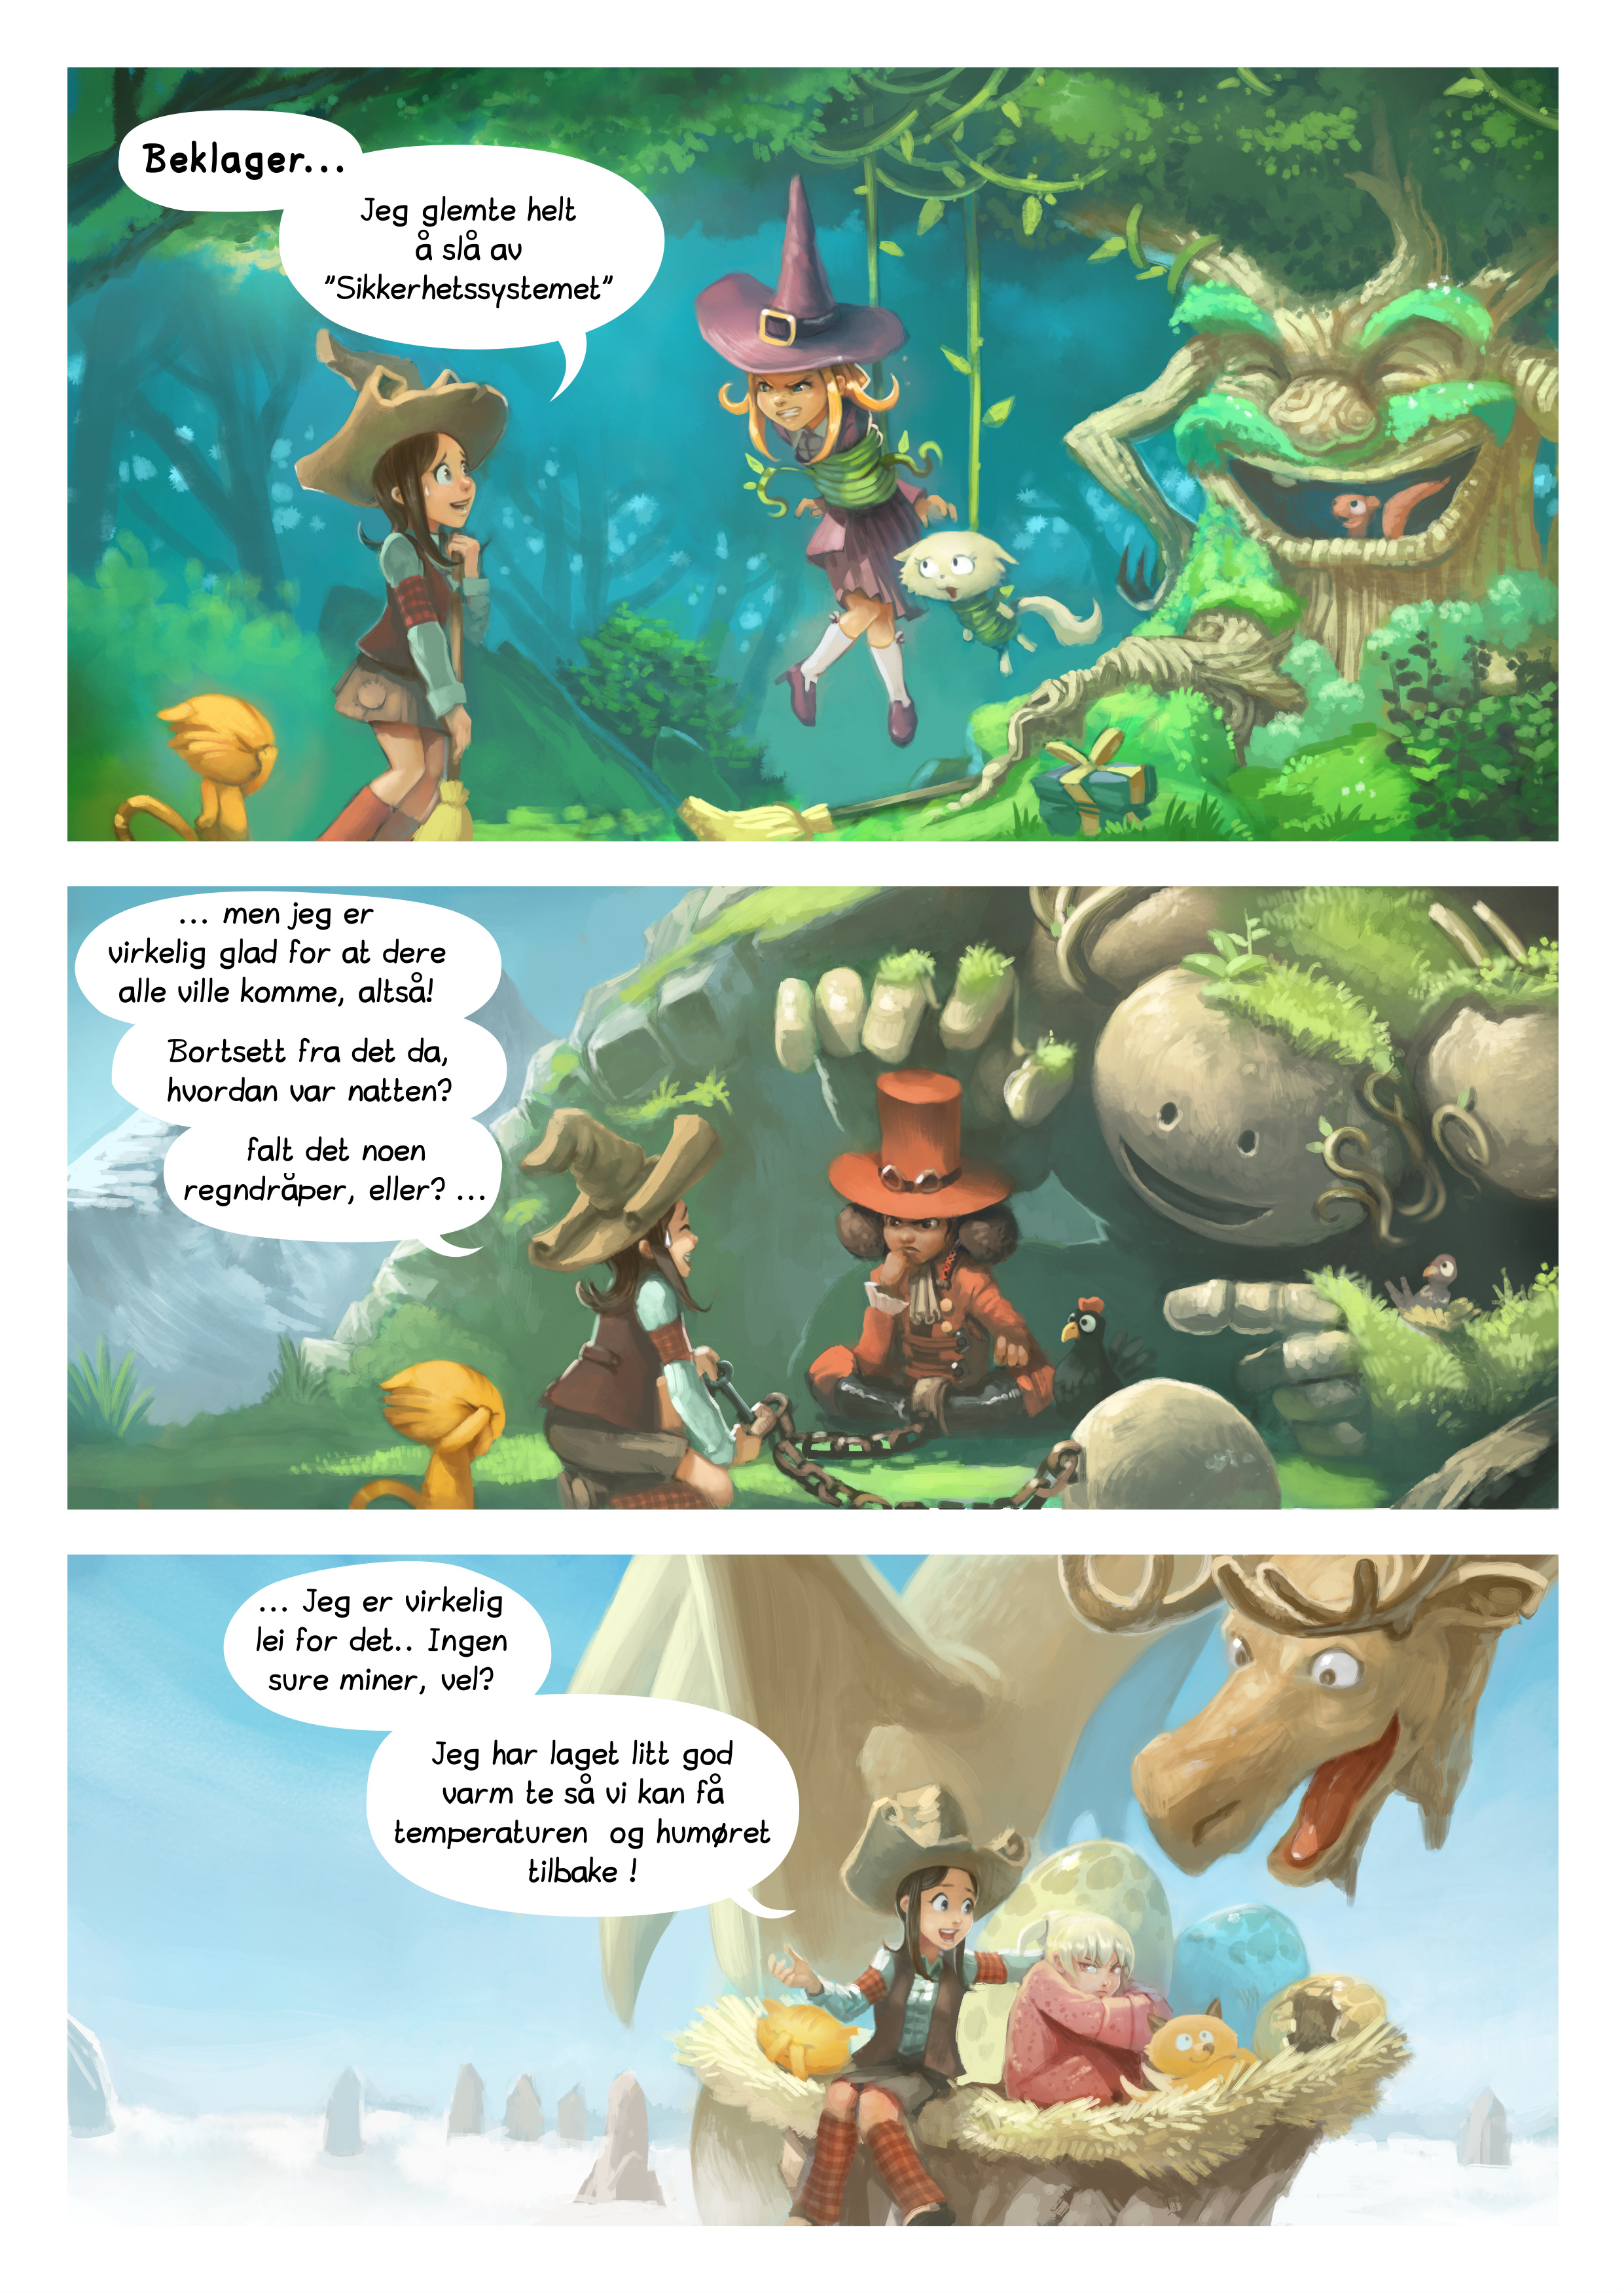 Episode 9: Remediet, Page 2